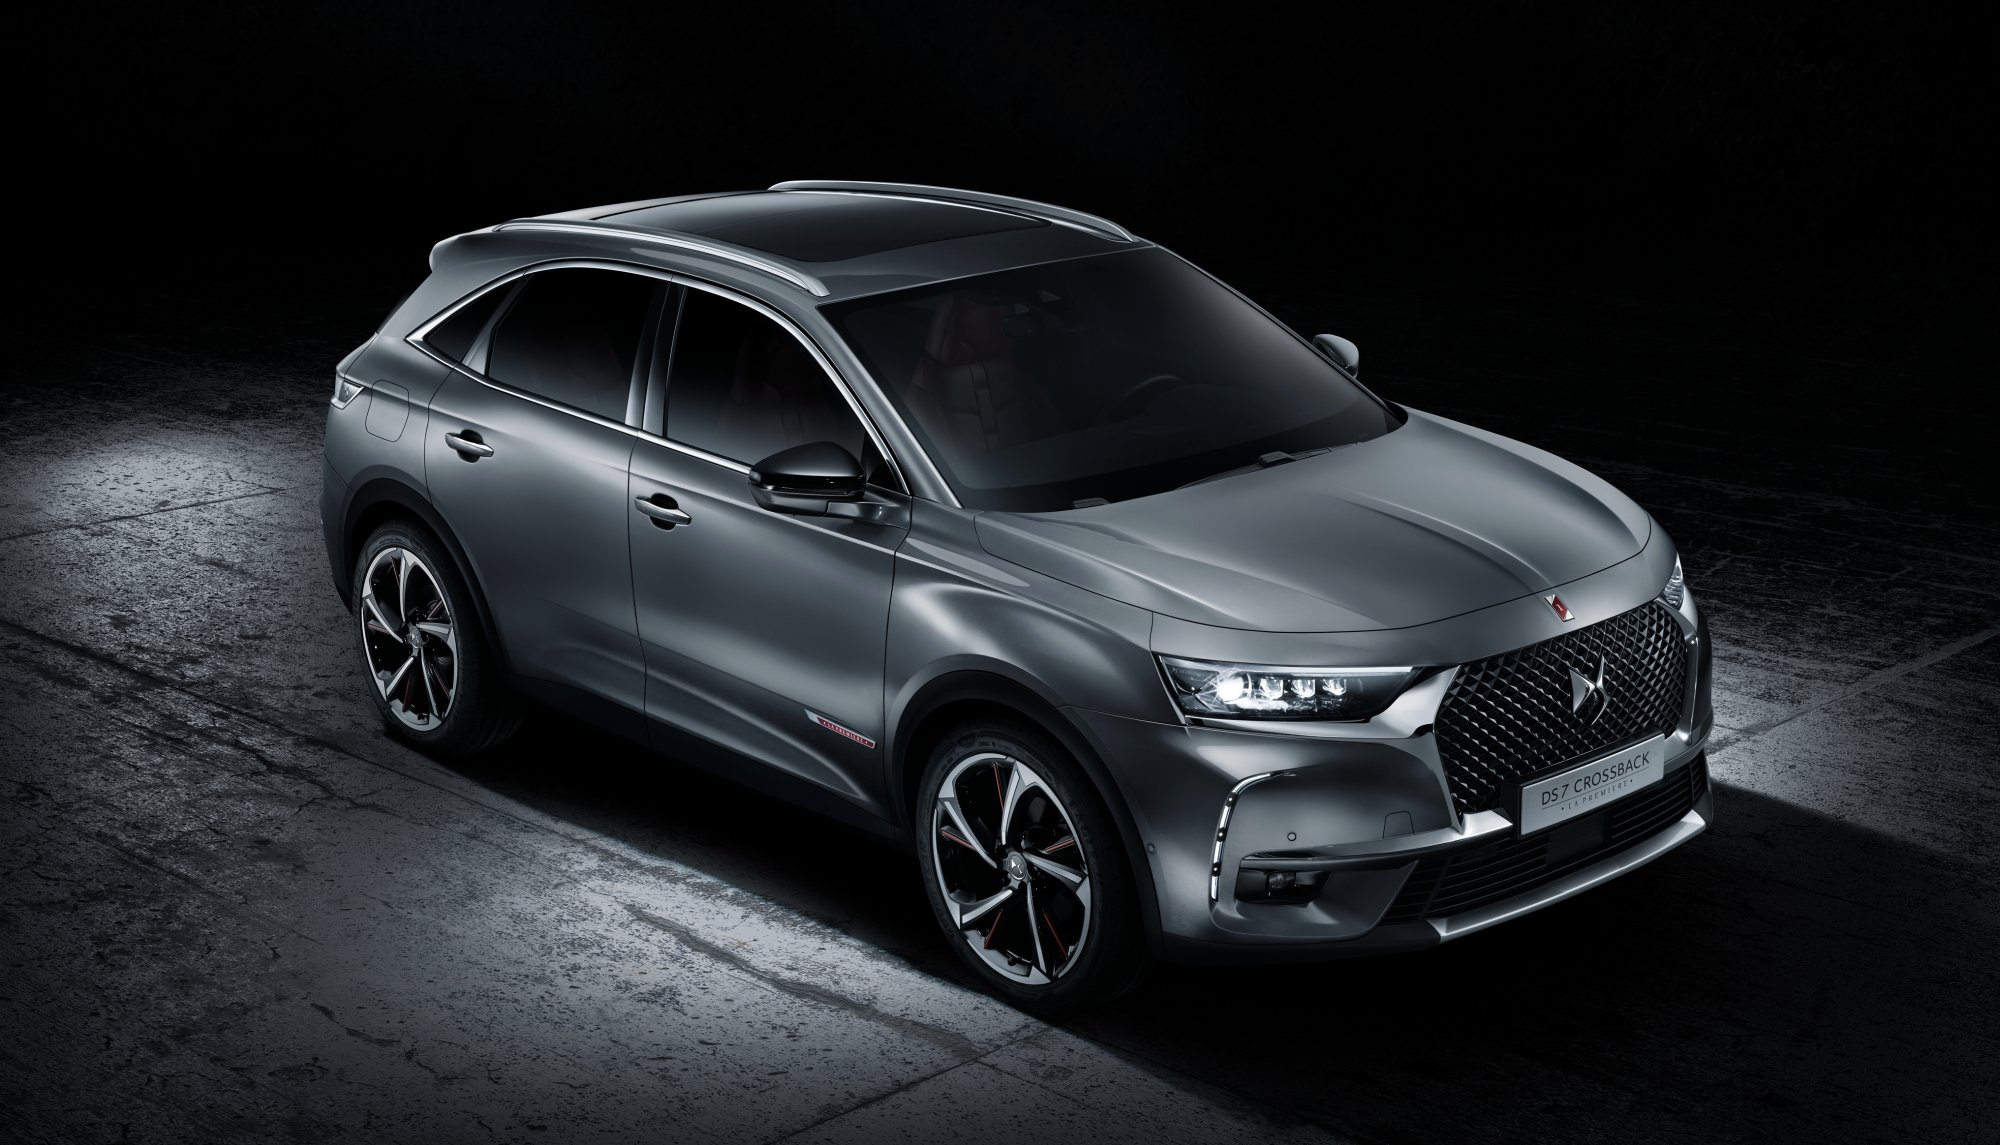 News 2018 Ds7 Crossback La Premi 232 Re Detailed For Uk